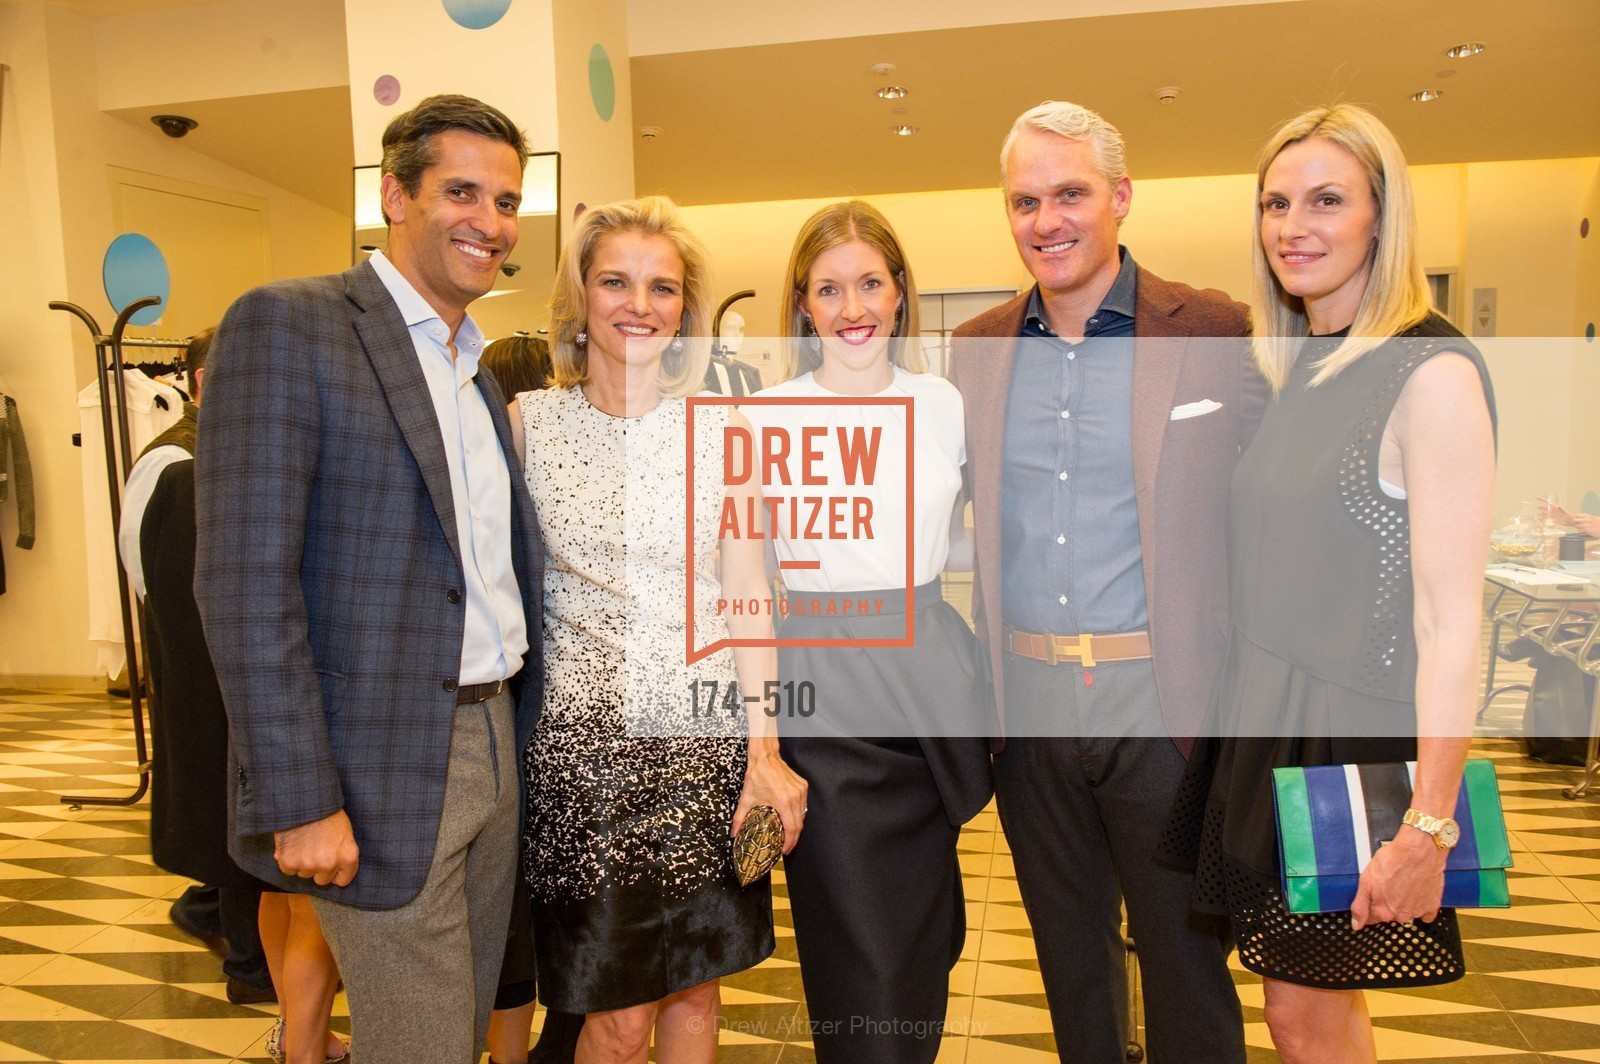 Wyatt Gruber, Leigh Matthes, Jane Gruber, Damian Ornani, Libby Ornani, BARNEY'S NEW YORK, Irene Neuwirth, JC Obando, Troy Surratt and THE TIPPING POINT COMMUNITY Chair Committe Host a Cocktail Party, US. US, April 9th, 2014,Drew Altizer, Drew Altizer Photography, full-service event agency, private events, San Francisco photographer, photographer California